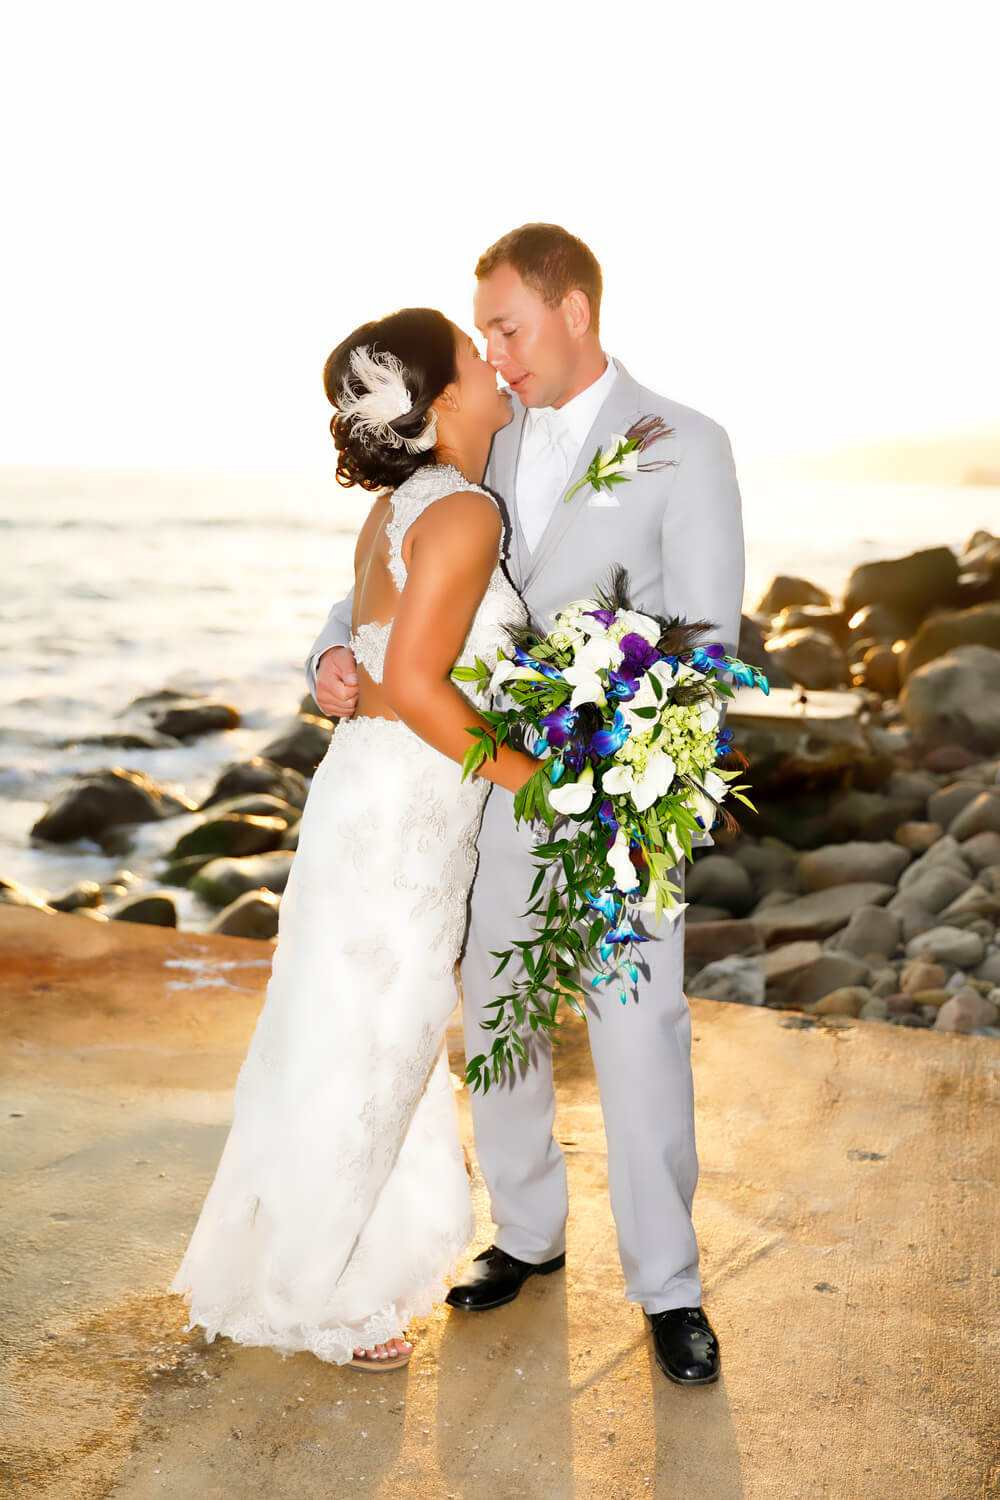 Newly married on the beach